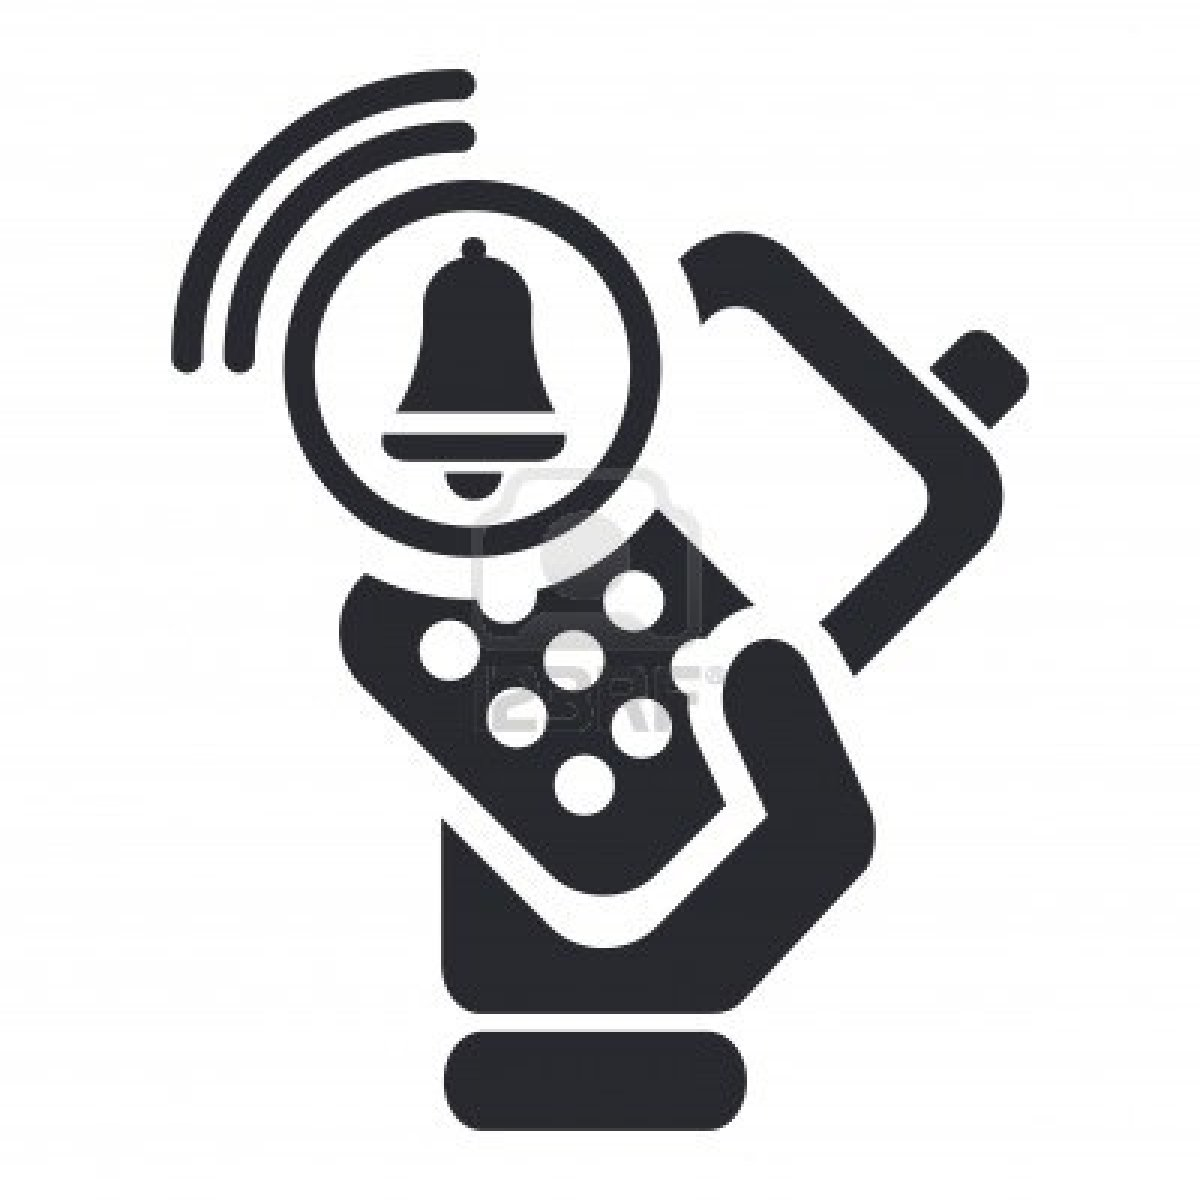 12124557-vector-illustration-of-single-isolated-phone-alarm-icon